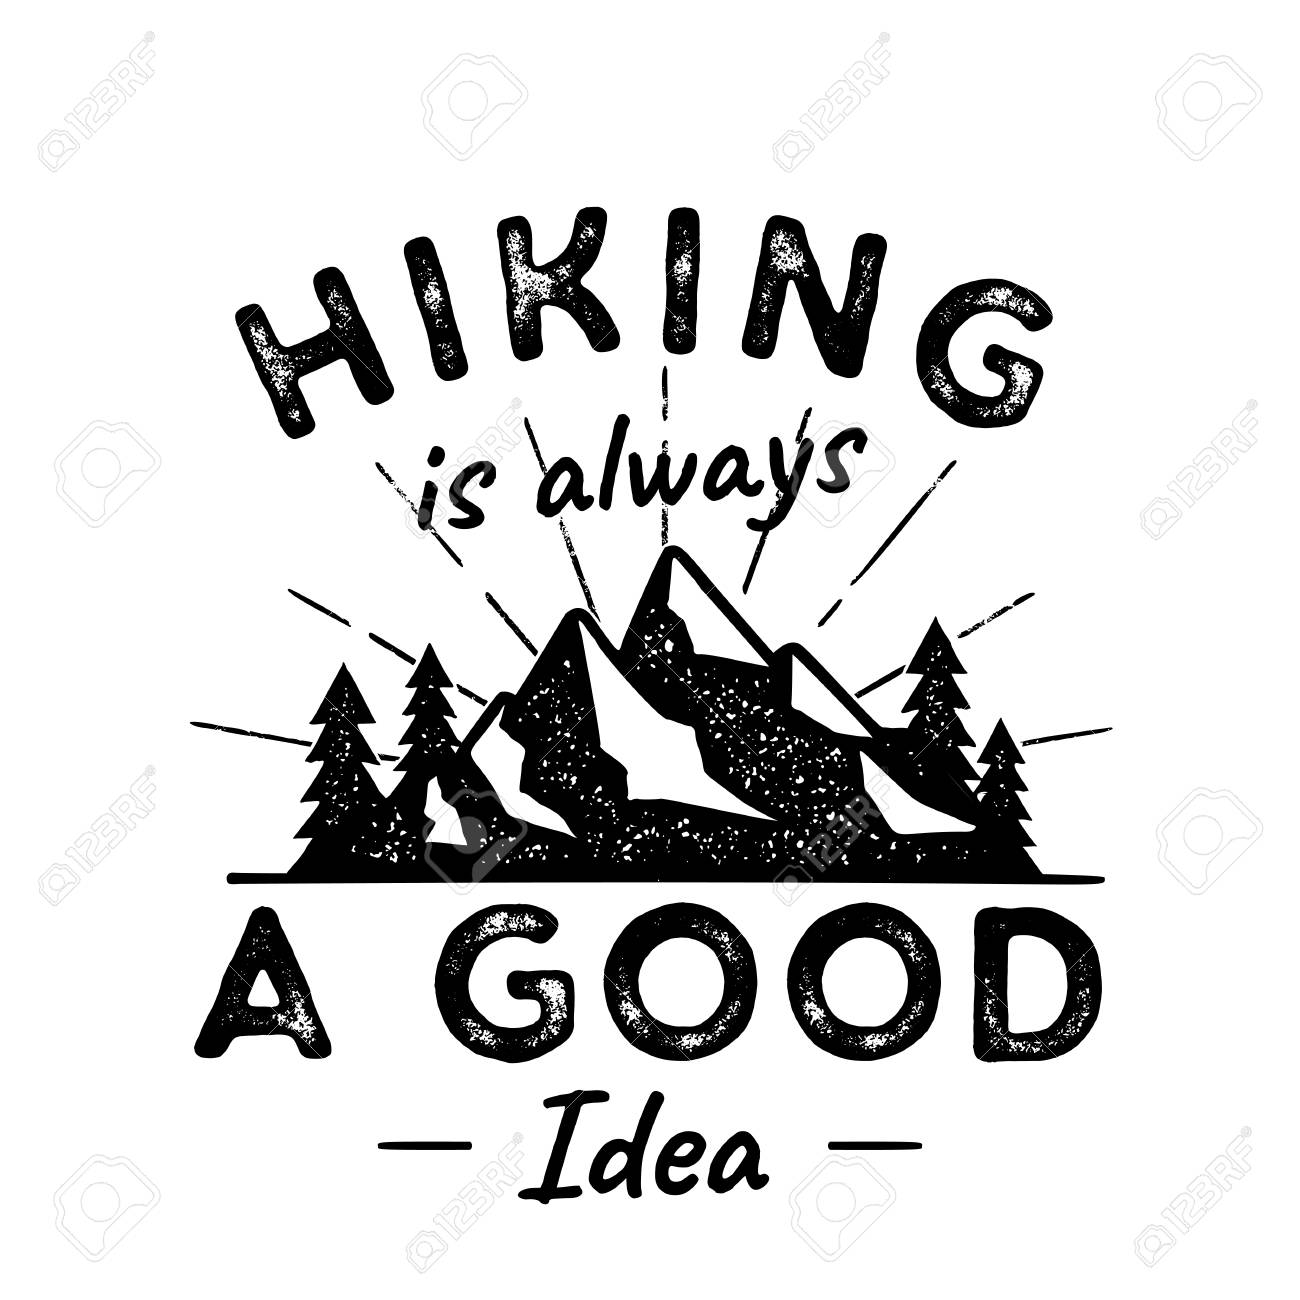 0cecb894 Hiking Adventure Logo illustration. Hiking is a good idea. Featuring  Mountains, trees,